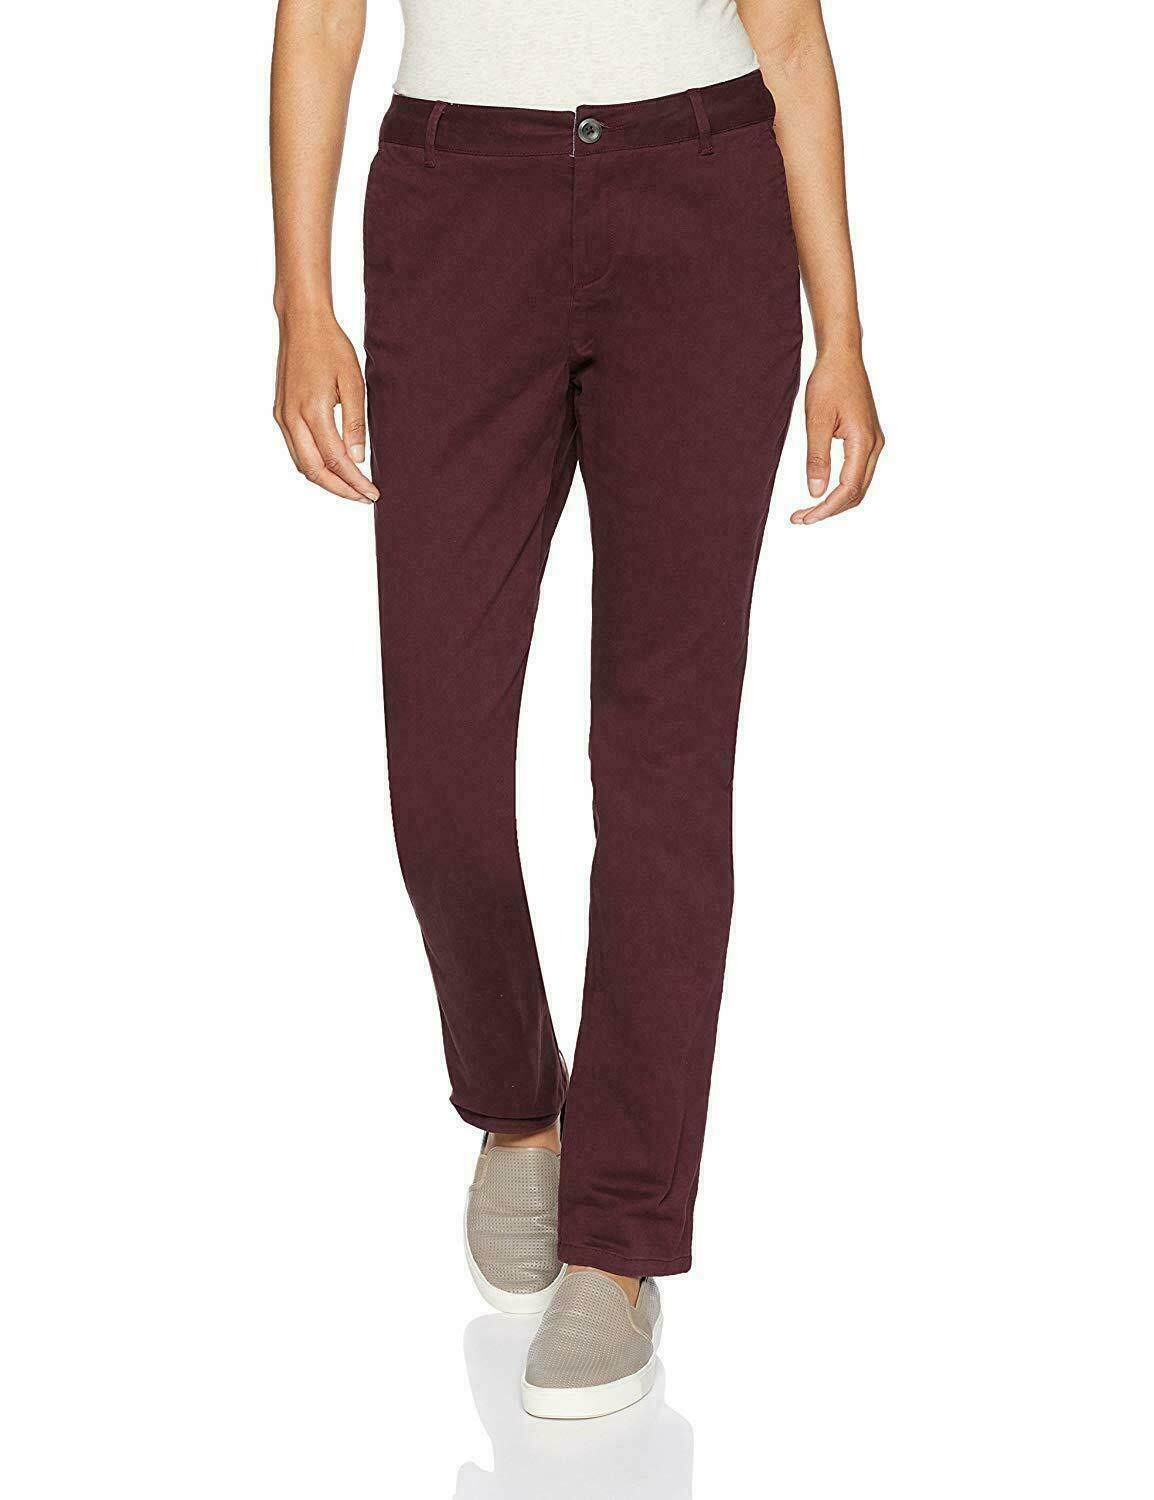 Primary image for Amazon Essentials Women's Straight-Fit Stretch Twill Chino Pant Burgundy Red 2